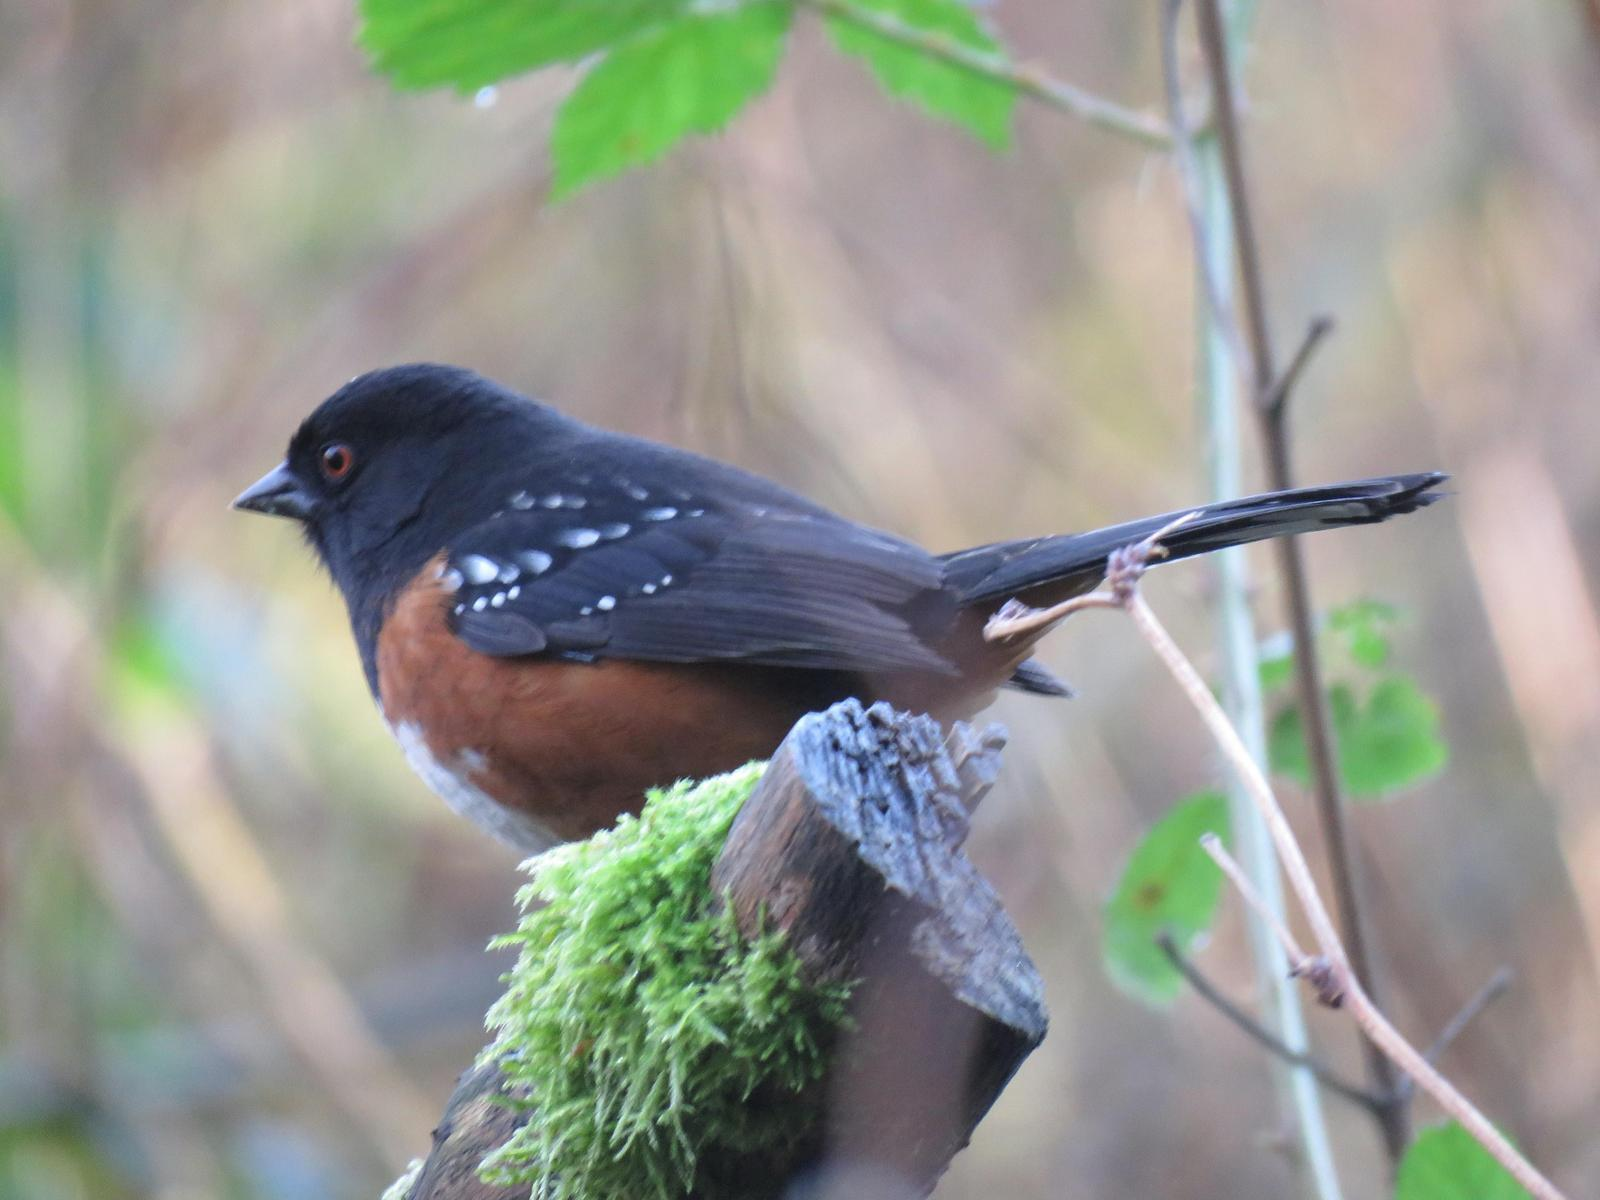 Spotted Towhee Photo by Ted Goshulak